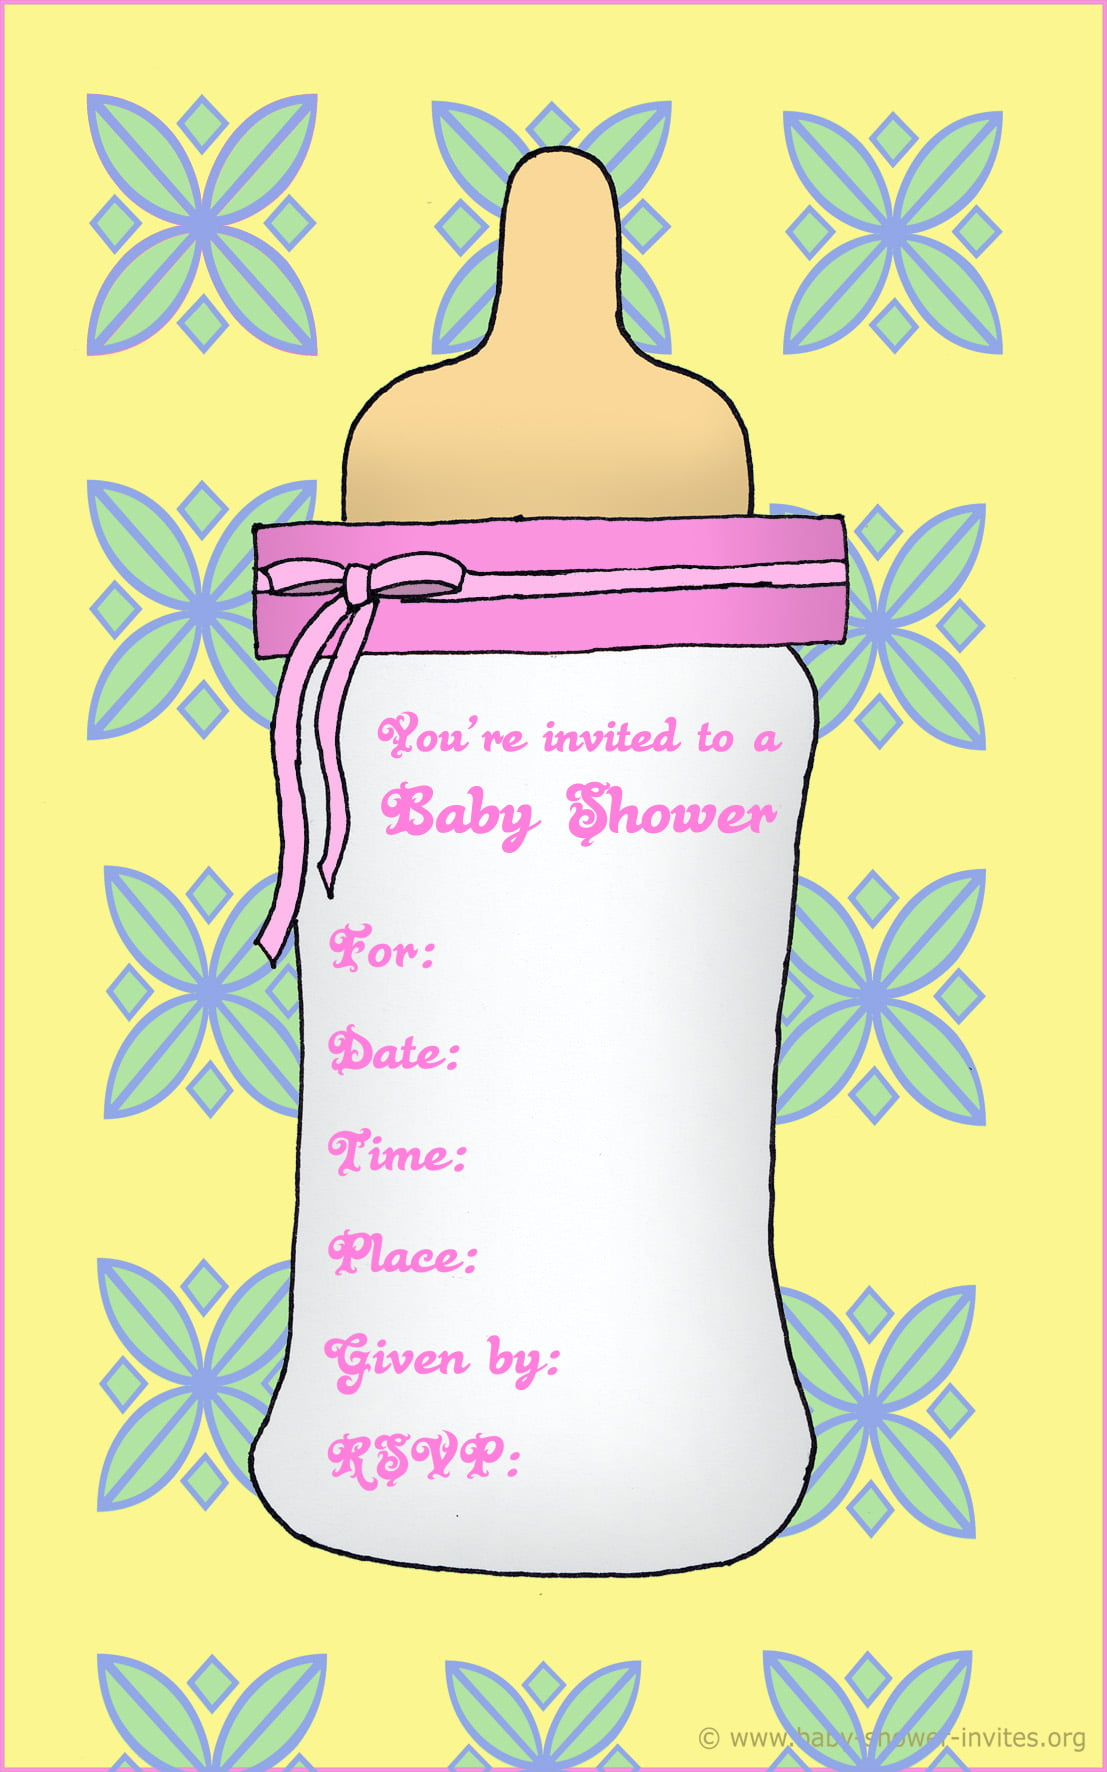 Free printable baby bottle baby shower invitation template for Free baby shower invitation templates